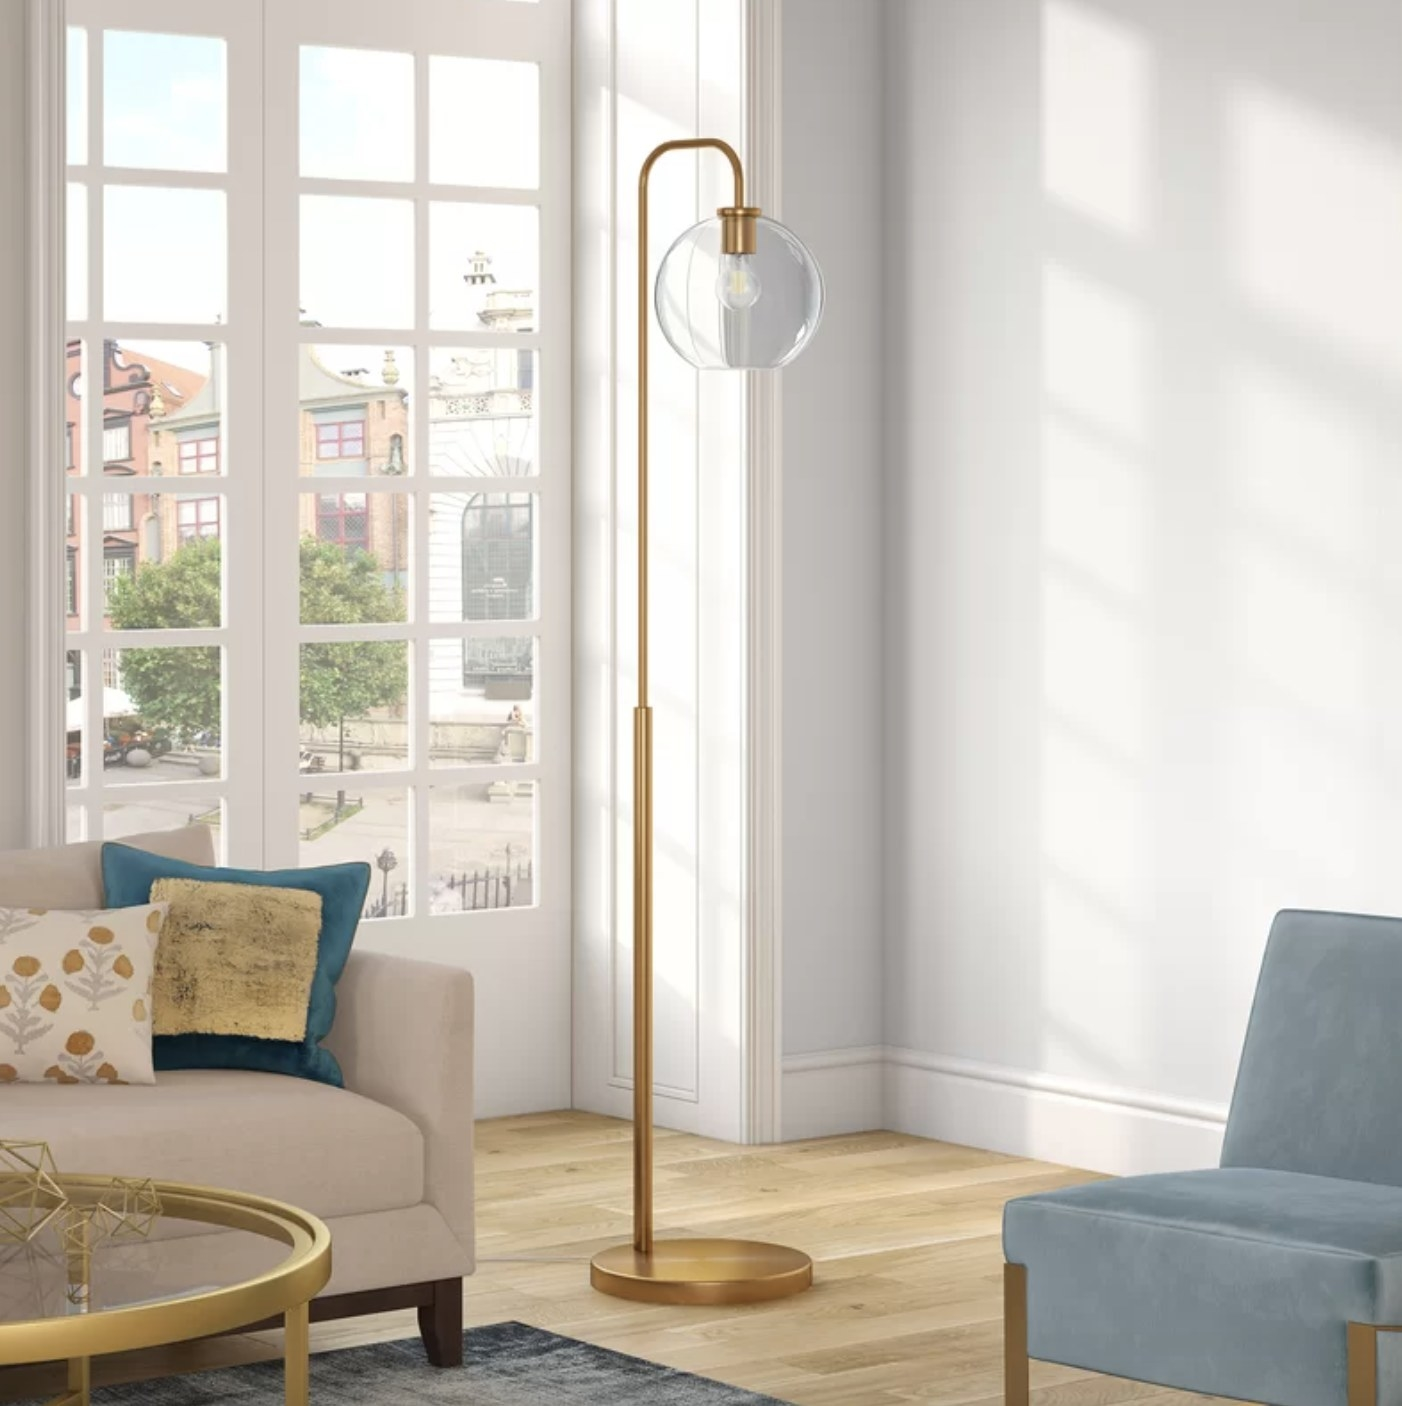 the lamp in brass with a clear shade